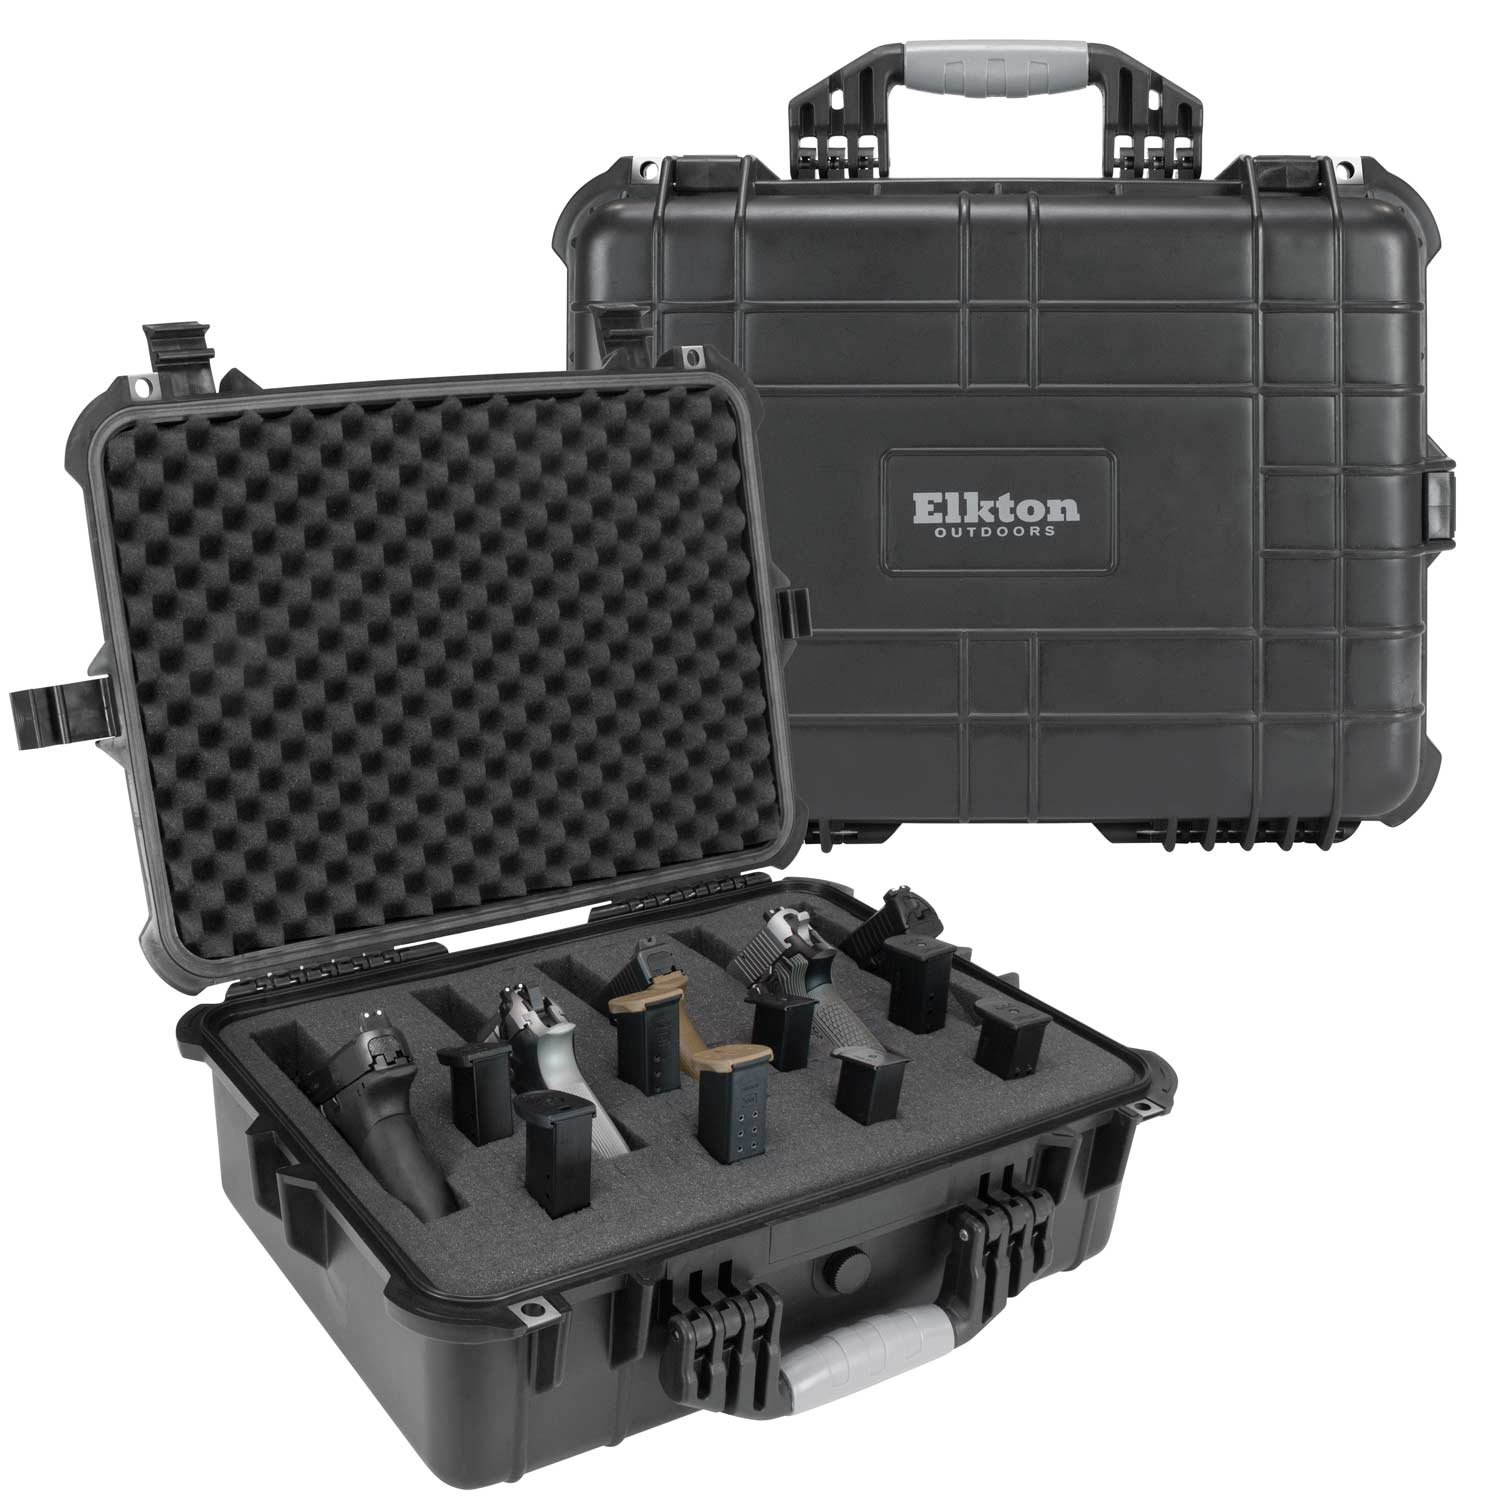 Elkton Outdoors Hard Gun Case: Fully Customizable Pistol Case: Holds 5 Handguns and 10 Magazines: Crush Resistant & Waterproof! by Elkton Outdoors (Image #1)